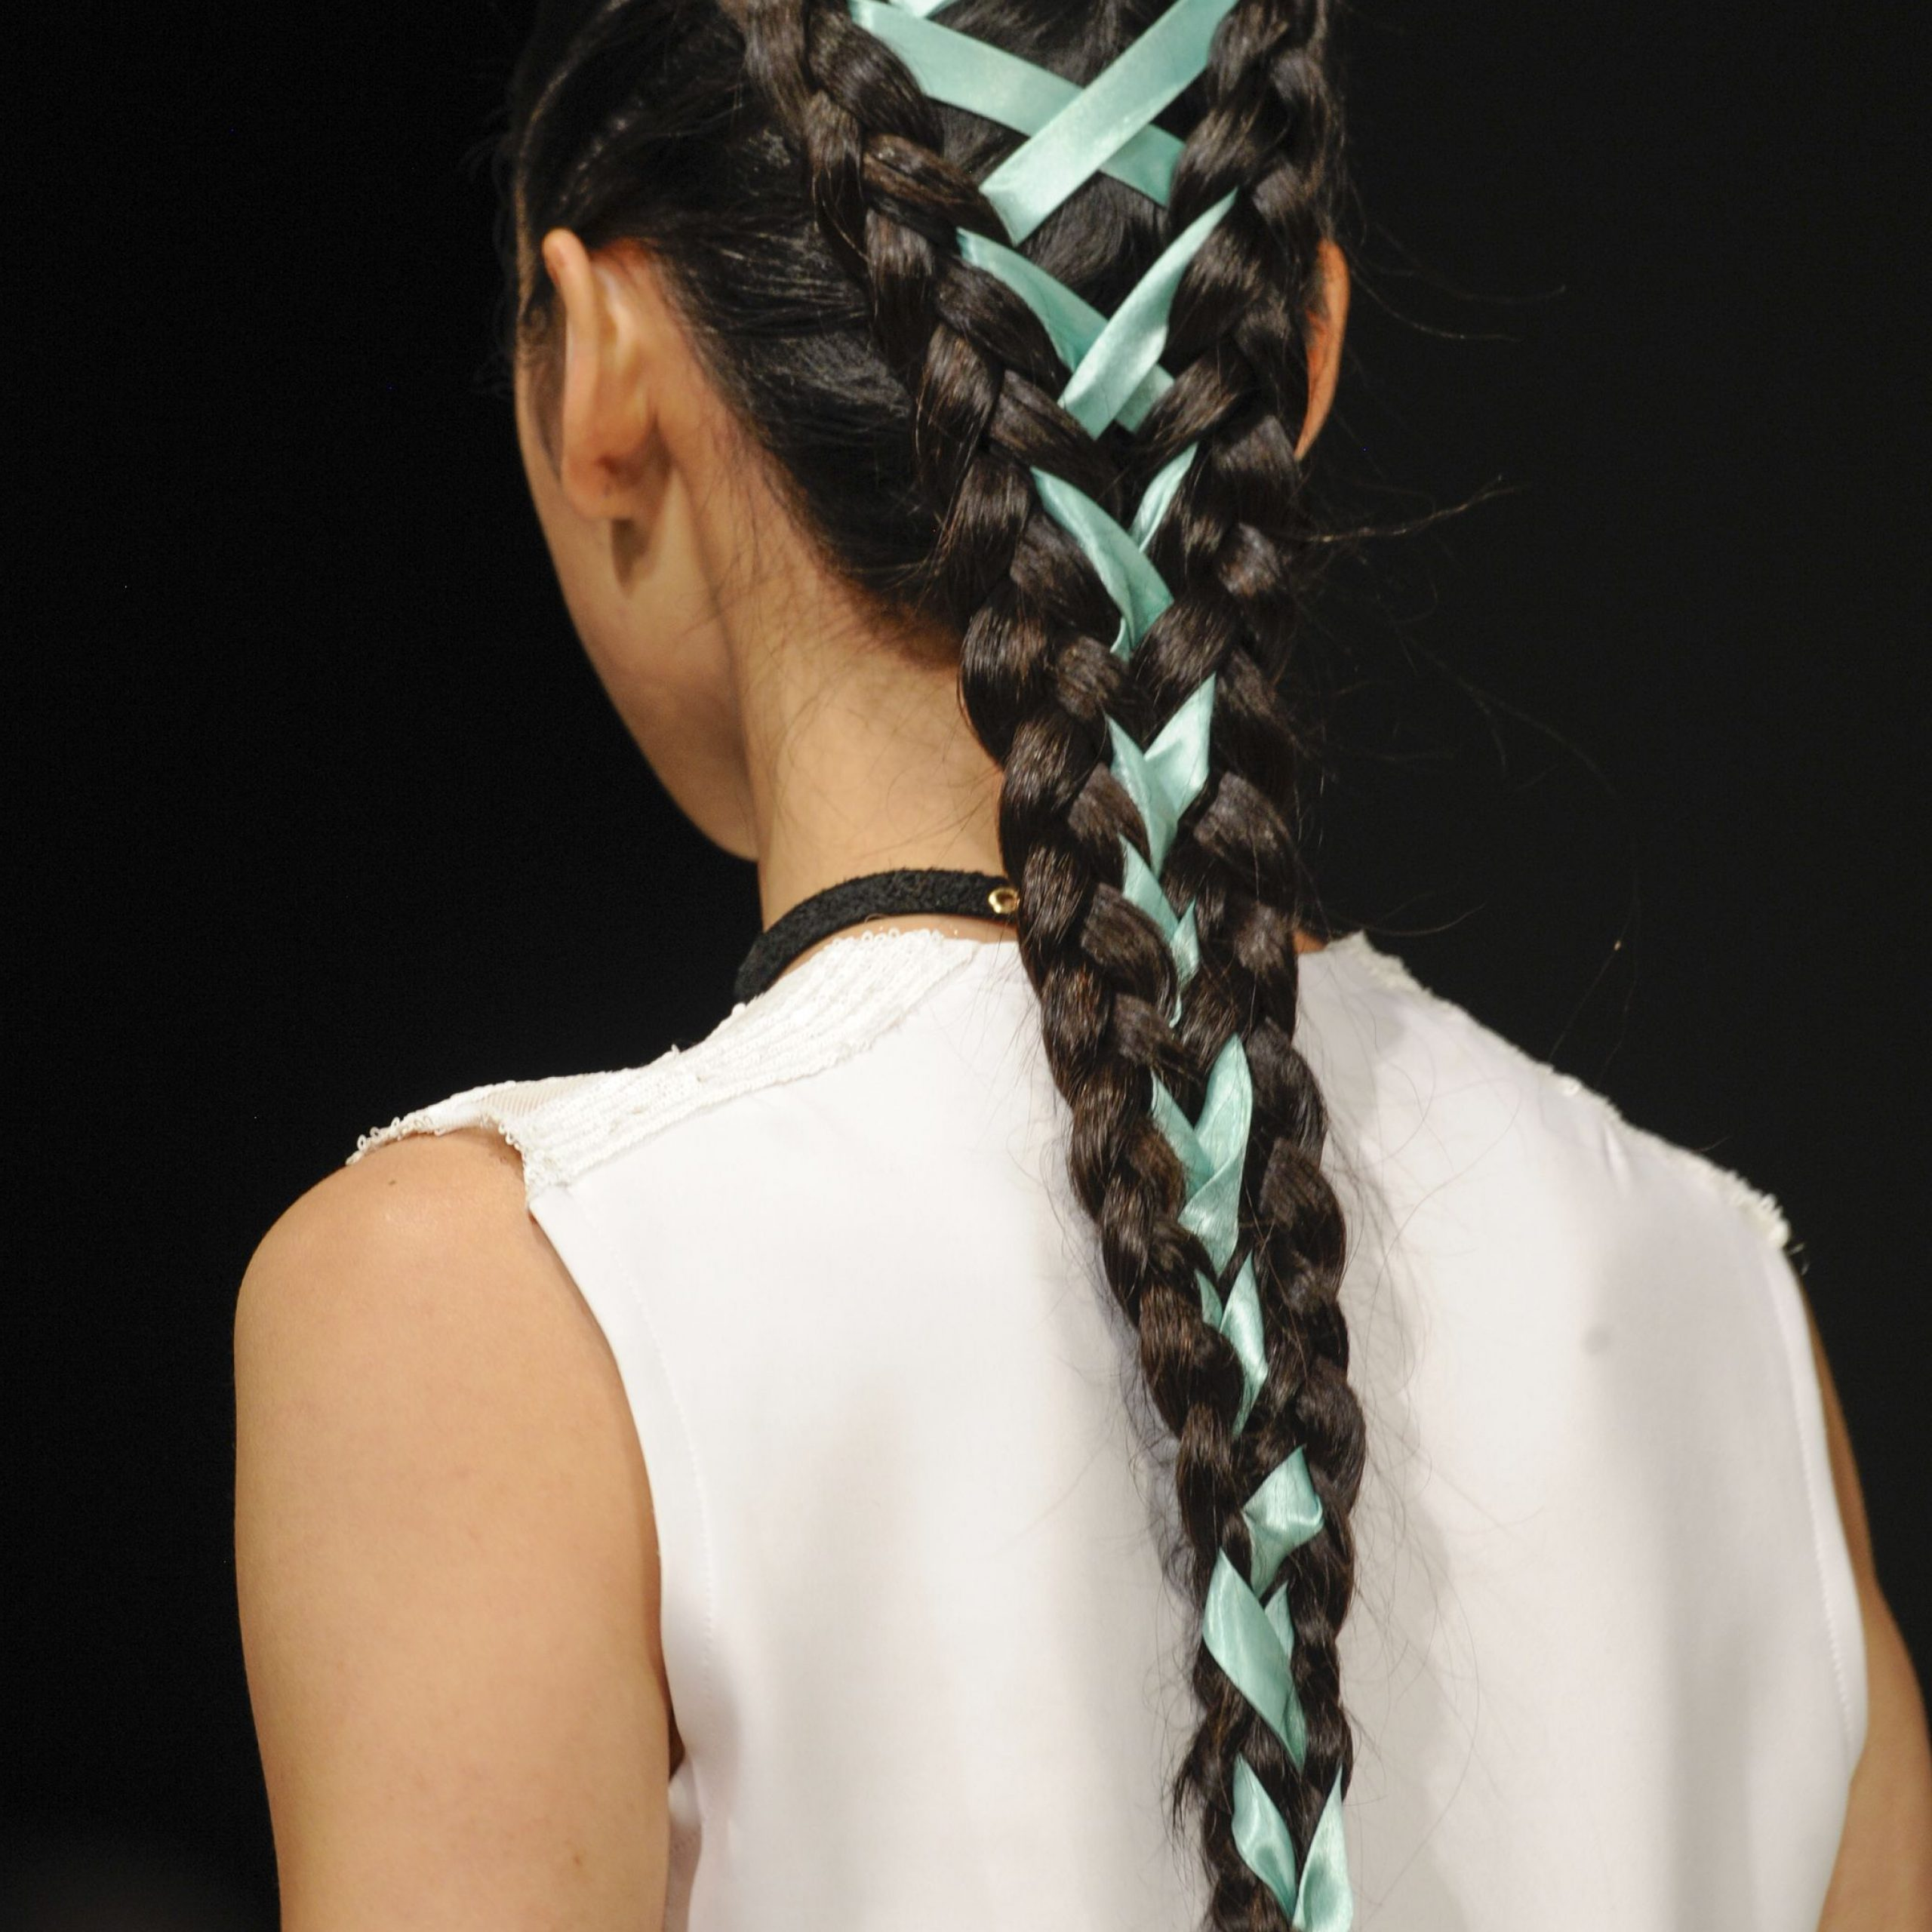 Corset Braids: The New Way To Tie Up Your Hair Inside Recent Corset Braid Hairstyles (View 7 of 20)